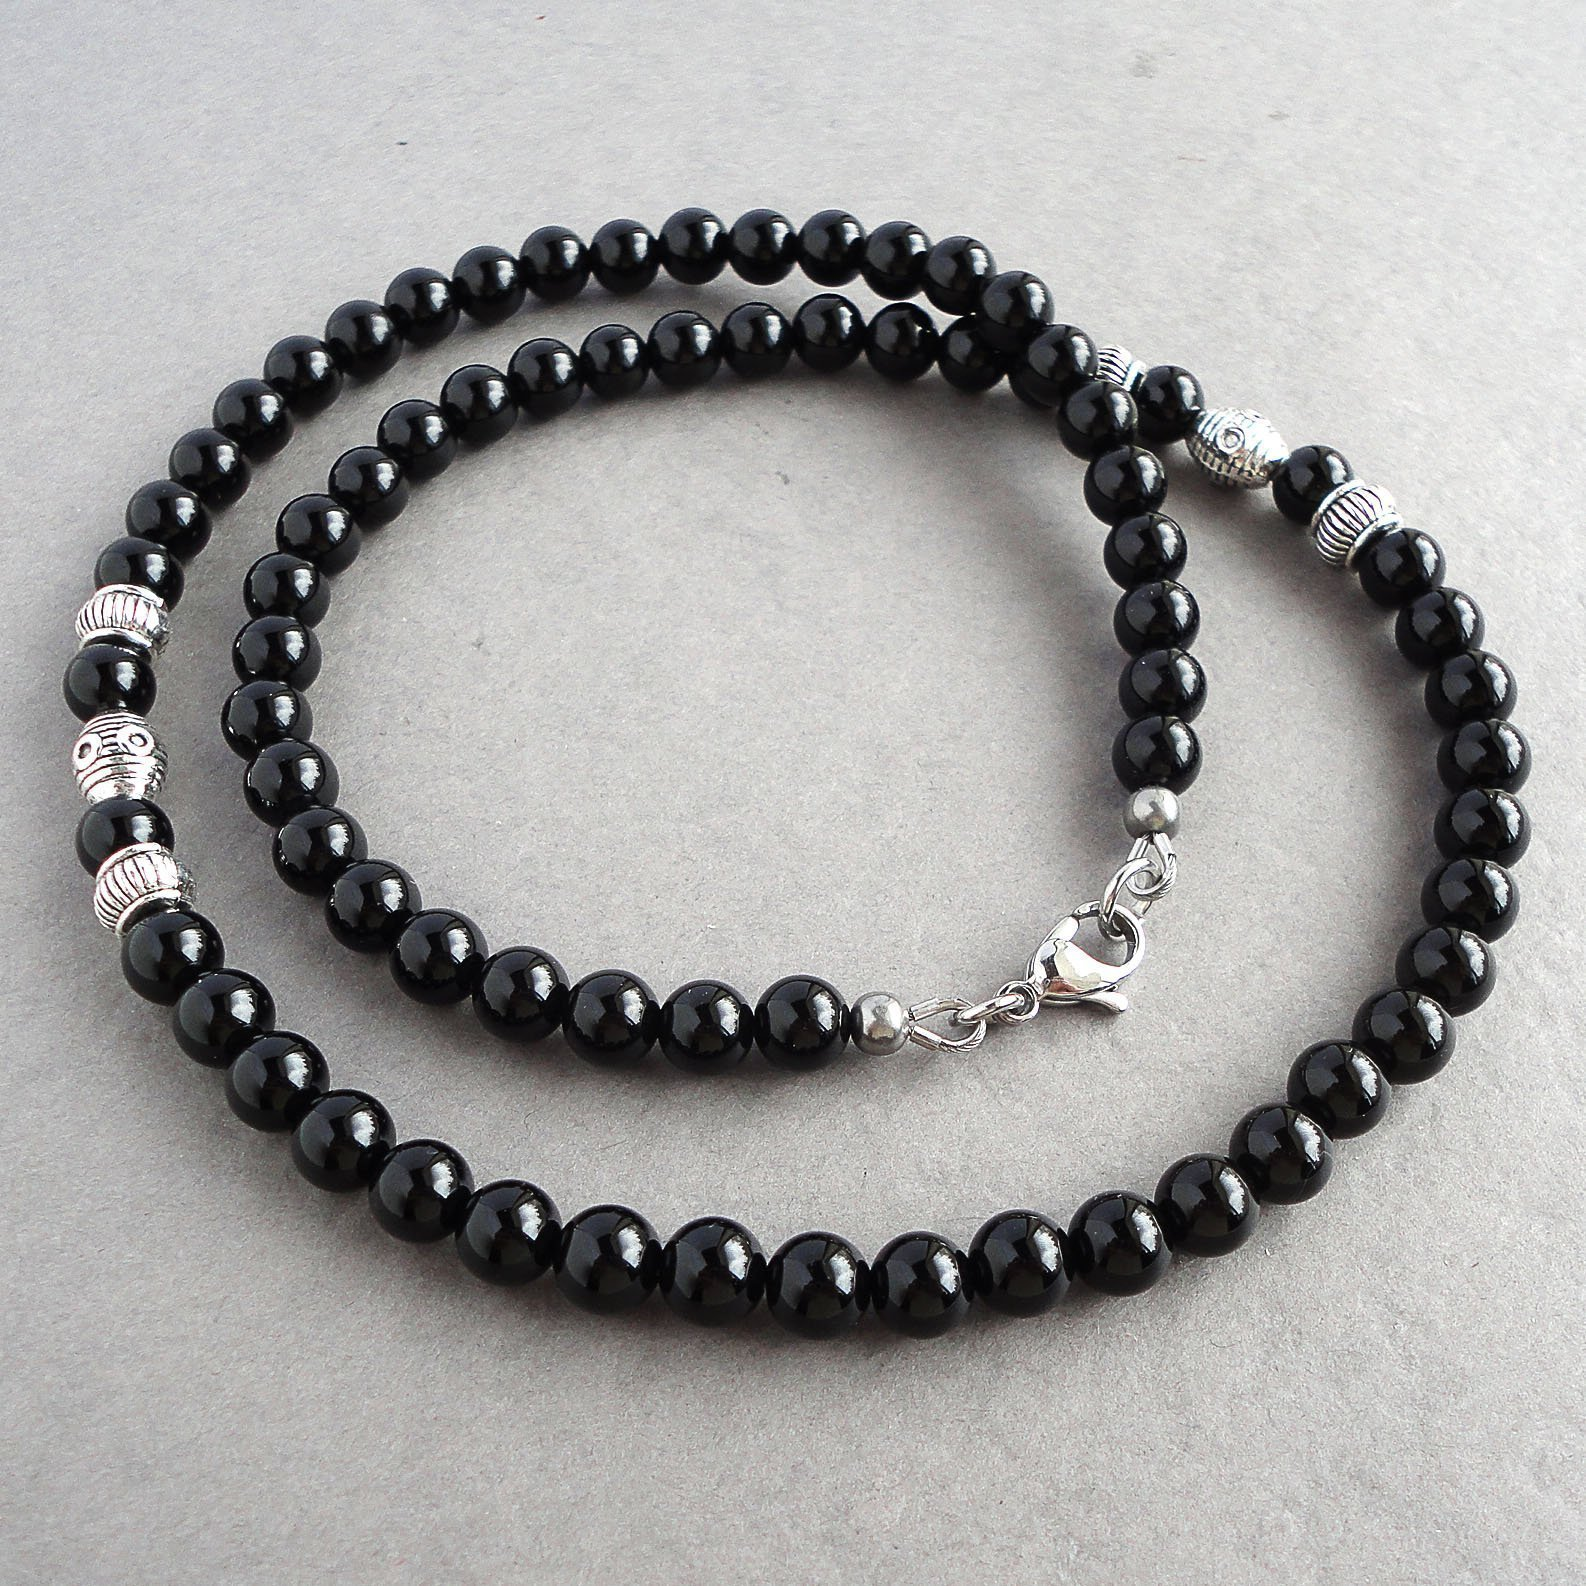 Mens Black Onyx Necklace 19 inches - Made with 6mm High Quality Gemstone Beads - Handcrafted in USA